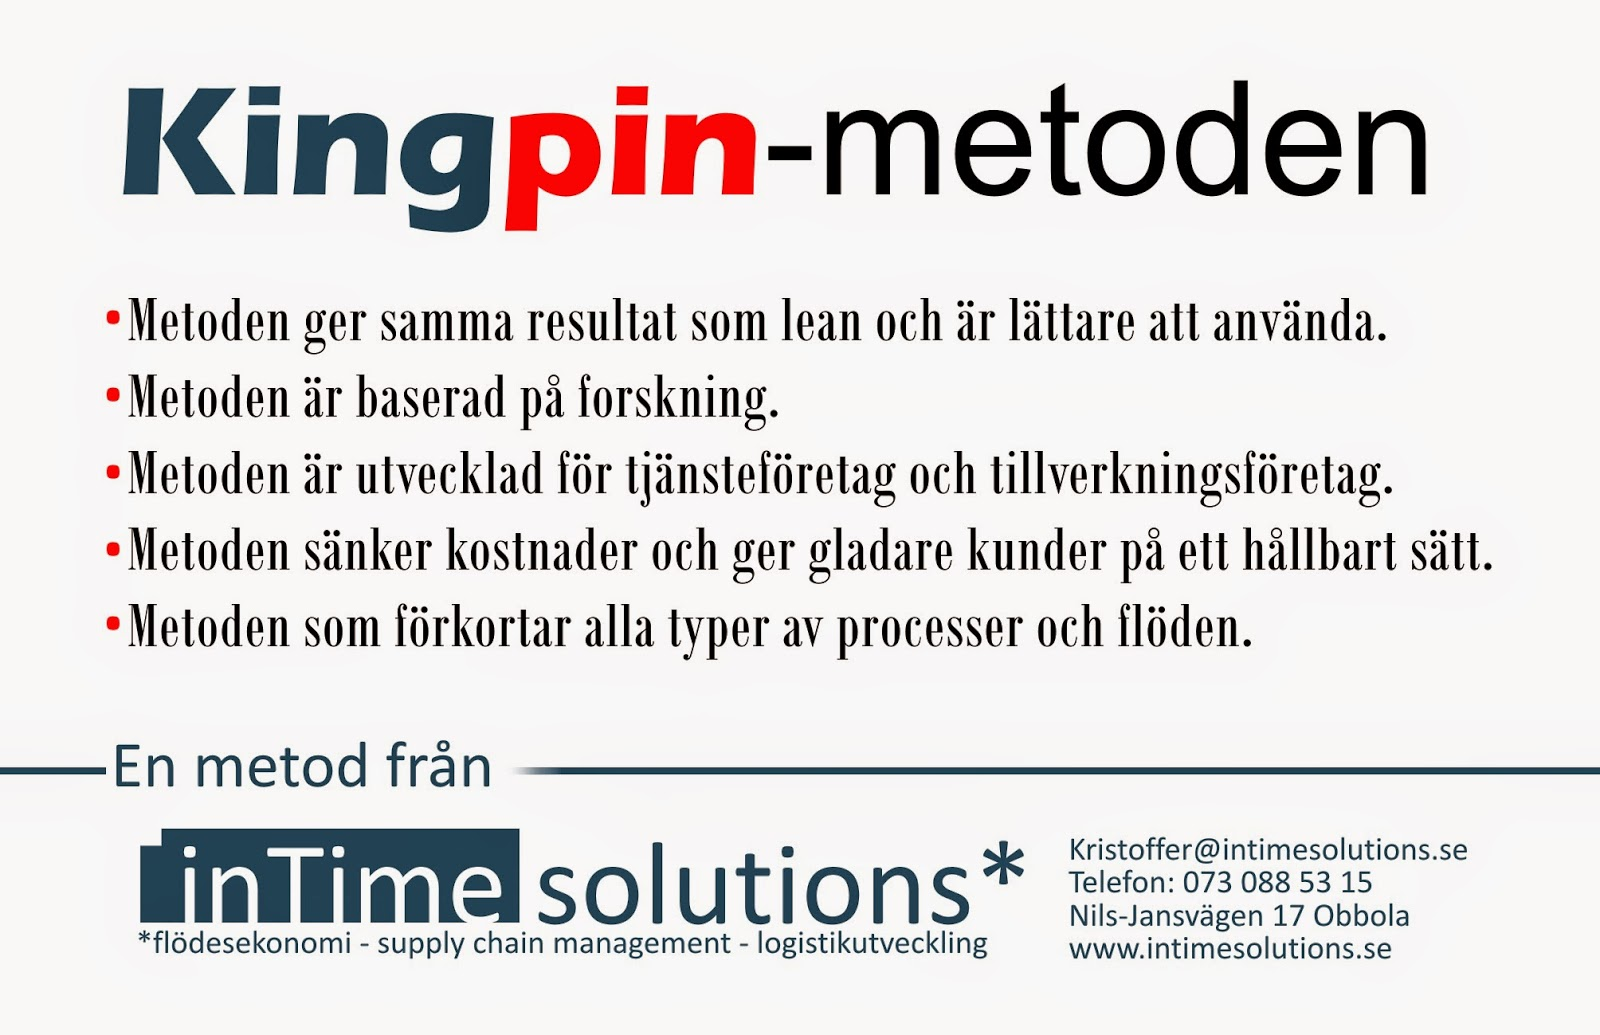 detta r kingpin metoden fr n intime solutions intime solutions nyheter. Black Bedroom Furniture Sets. Home Design Ideas